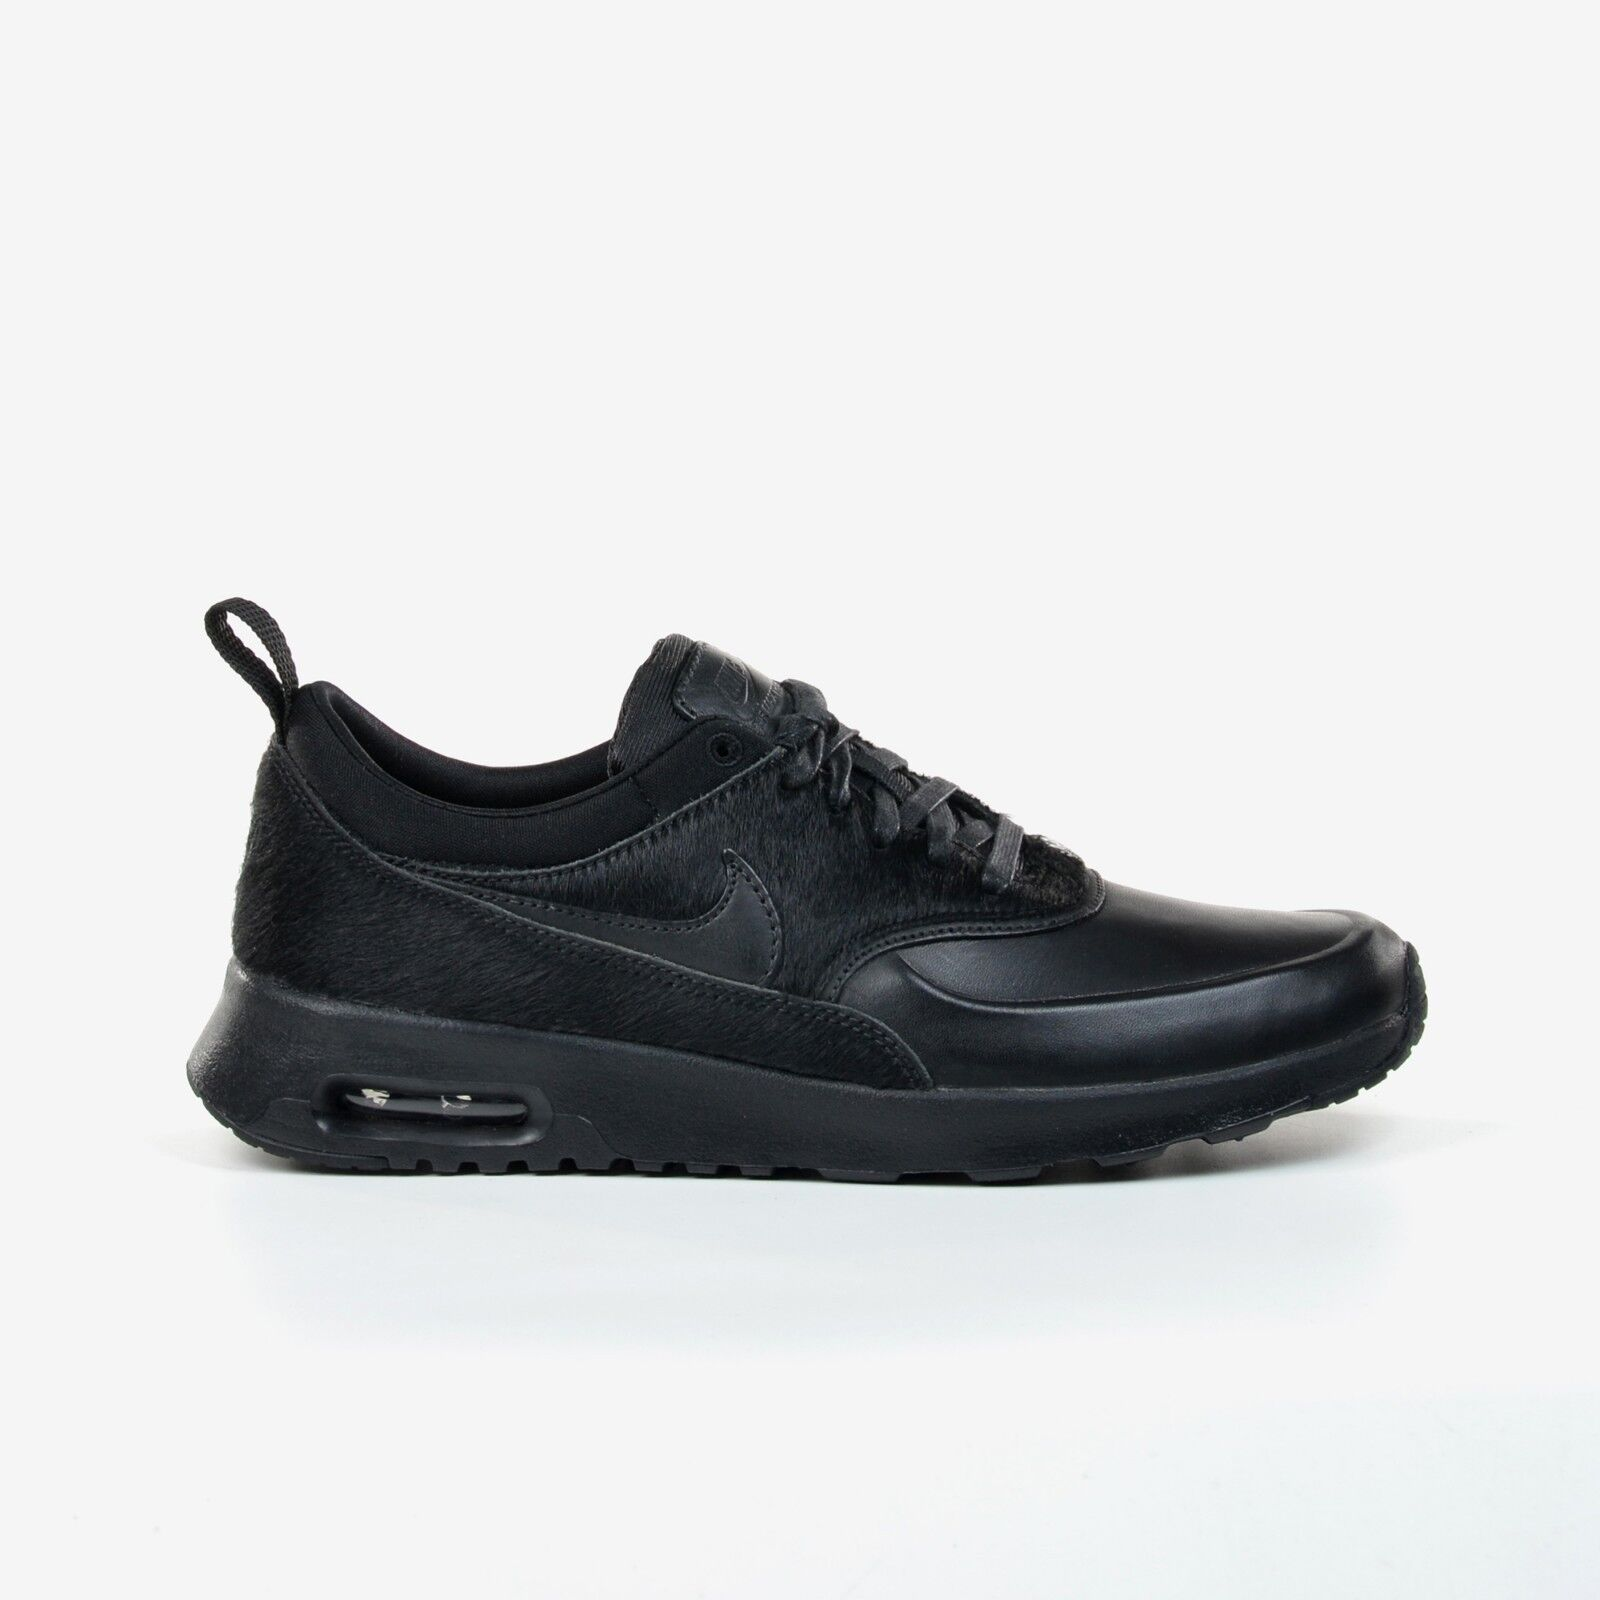 more photos 582d9 58050 Nike Women s Air Max Thea Premium Triple Black Running Shoes 2017 DS  616723-011